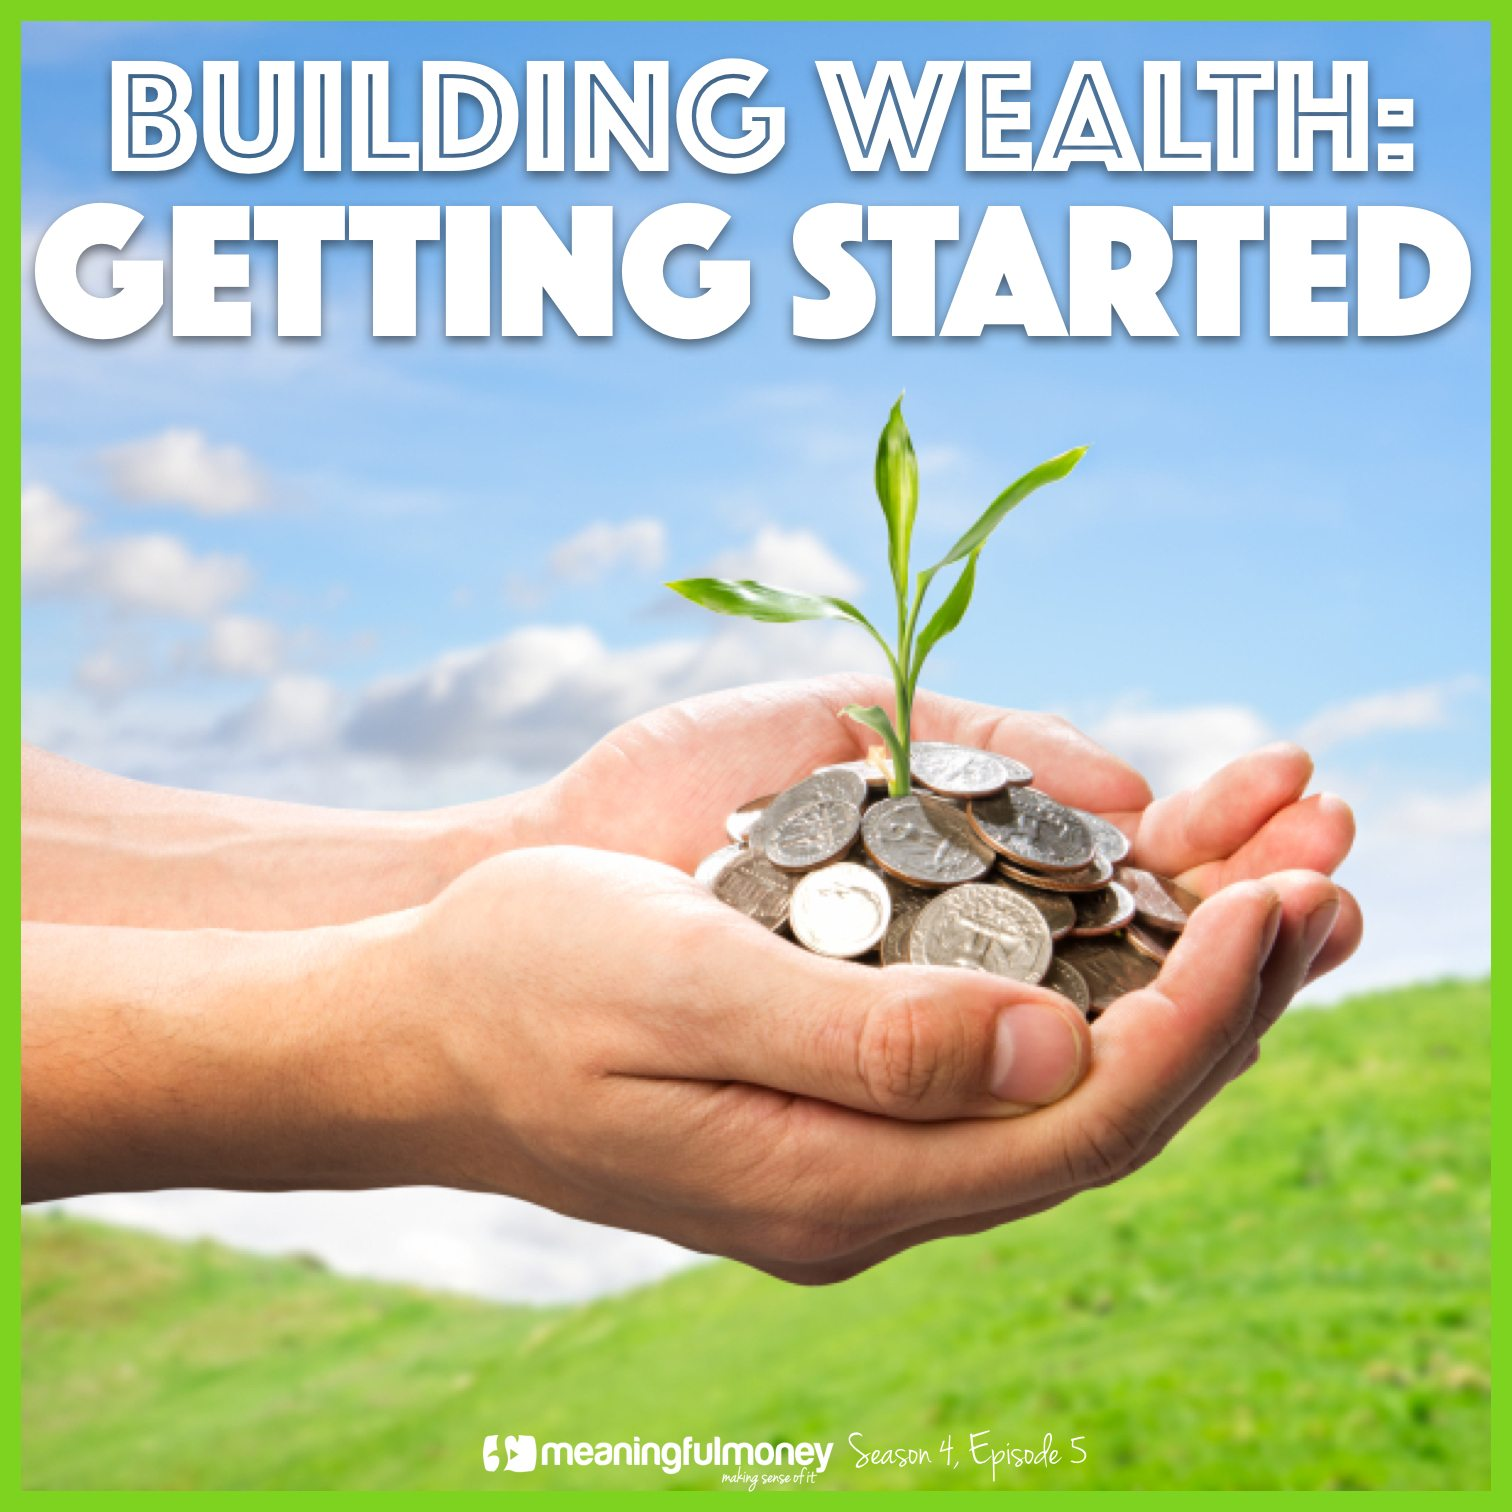 Building Wealth: Getting Started